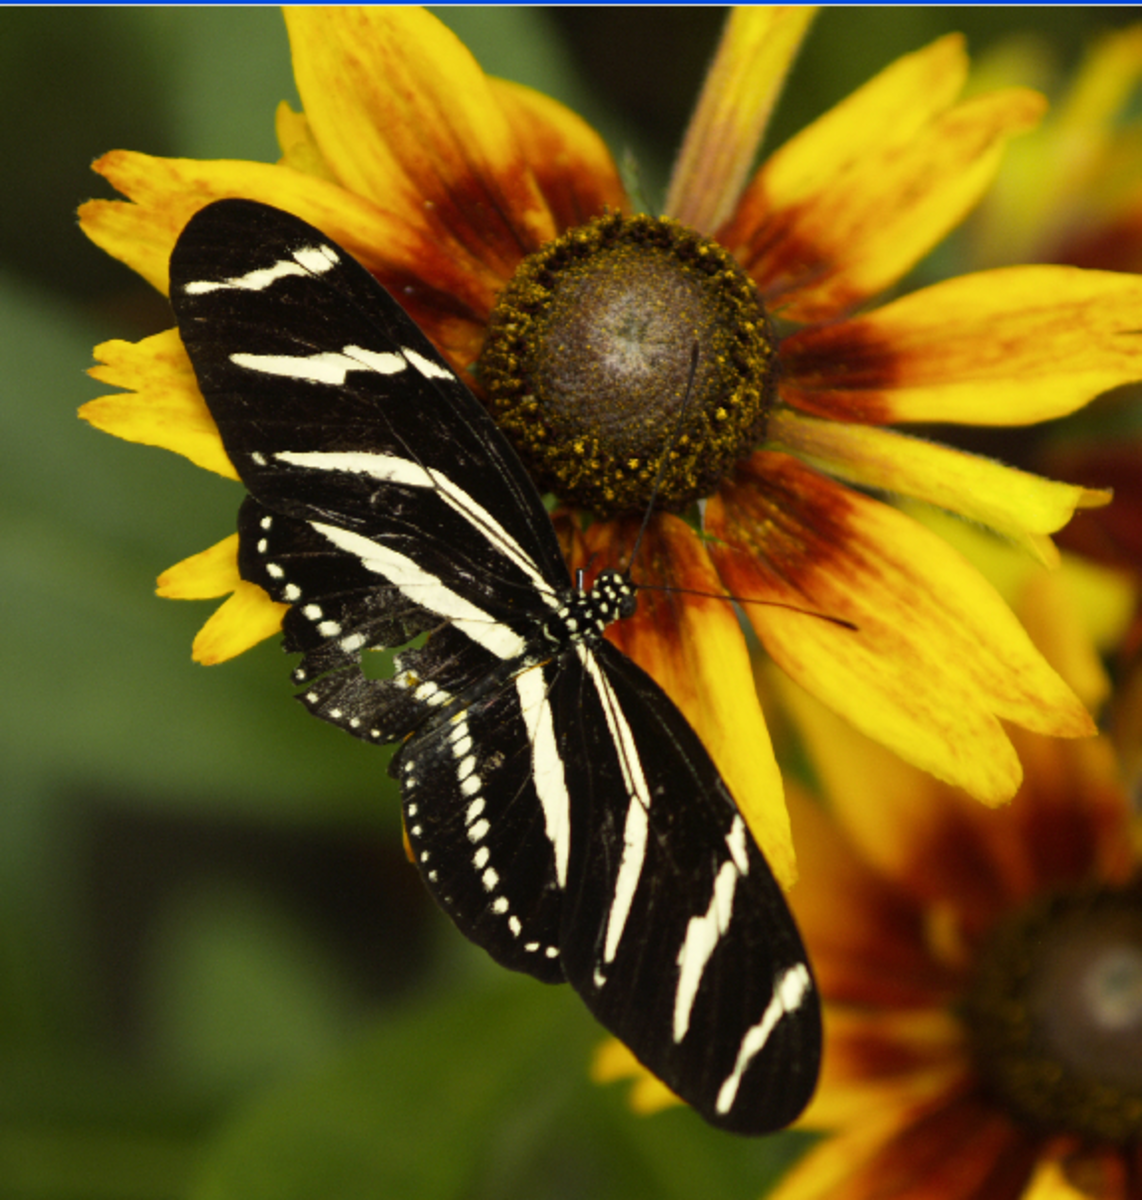 Zebra Black and White Striped Butterfly on Sunflower